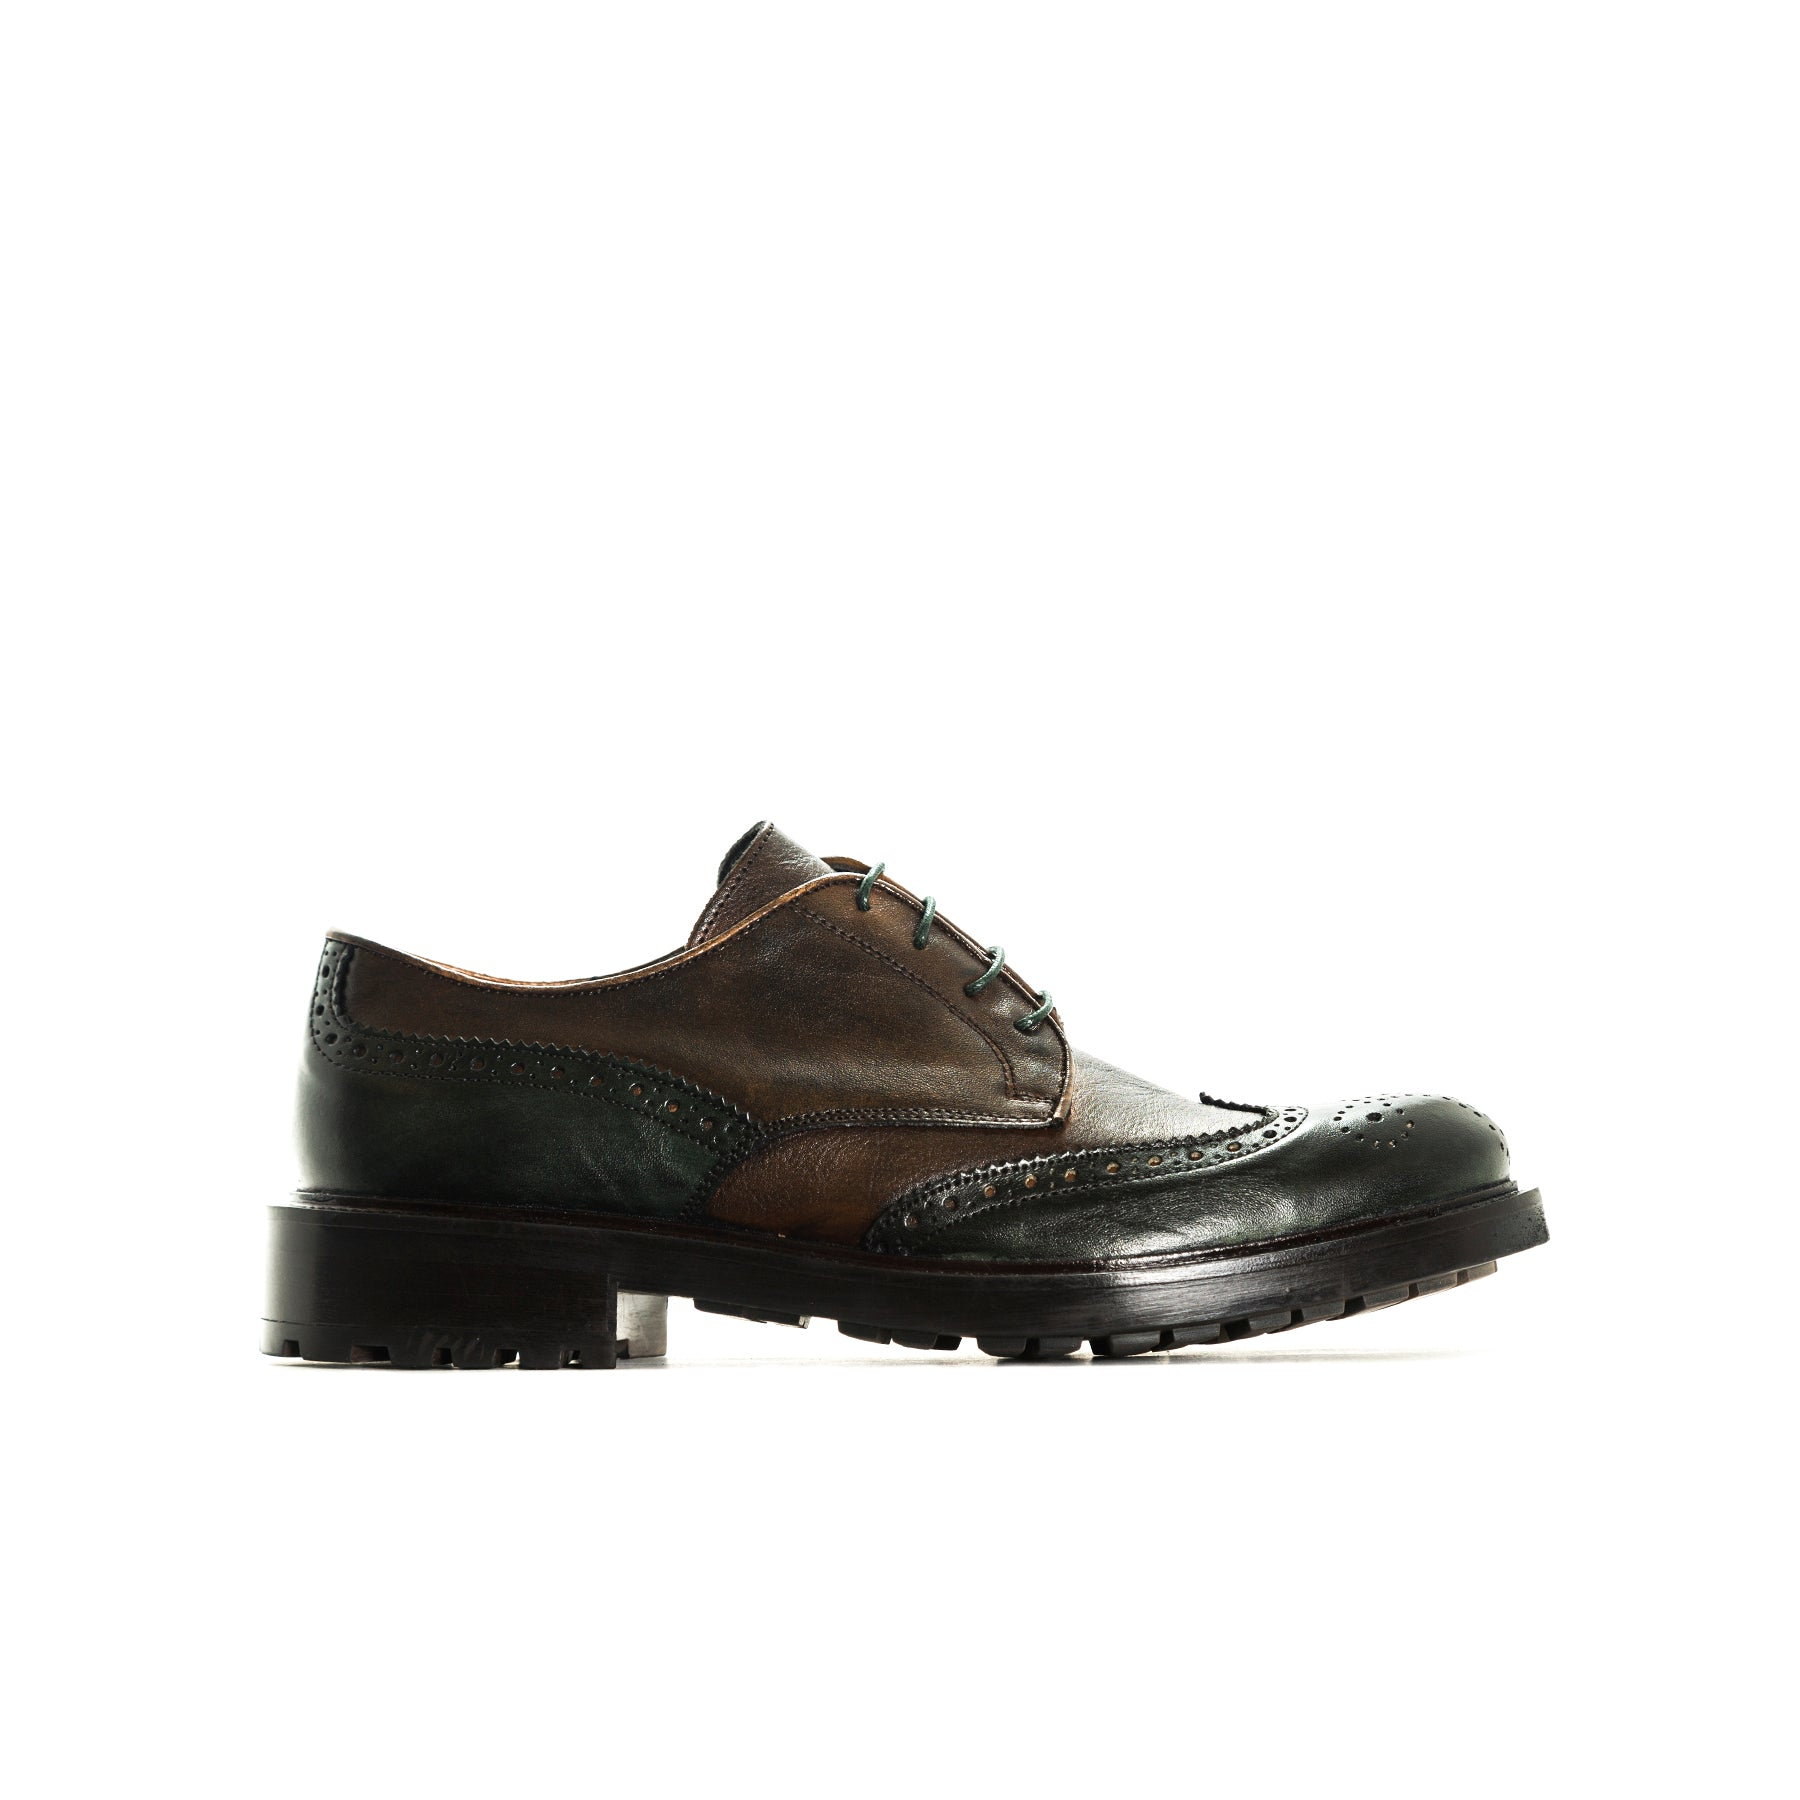 Chaplin Brown/Green Leather Shoes